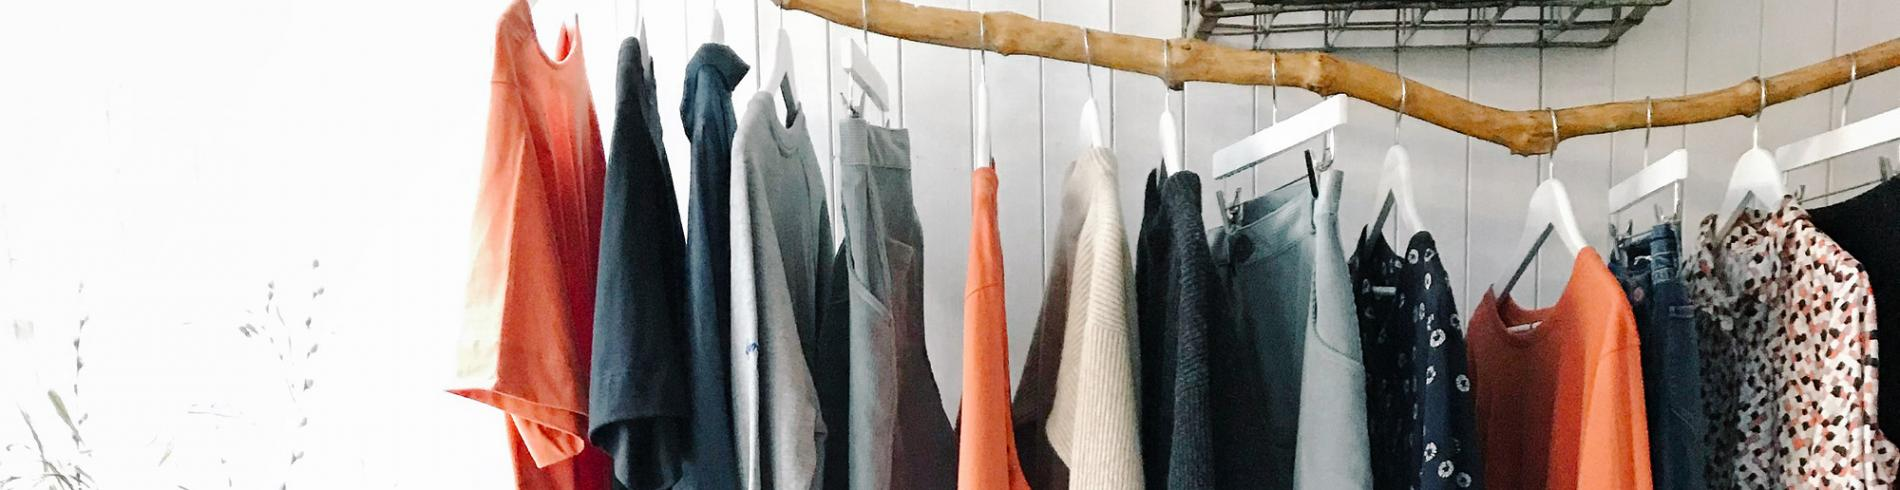 Sustainable fashion on a clothes rack